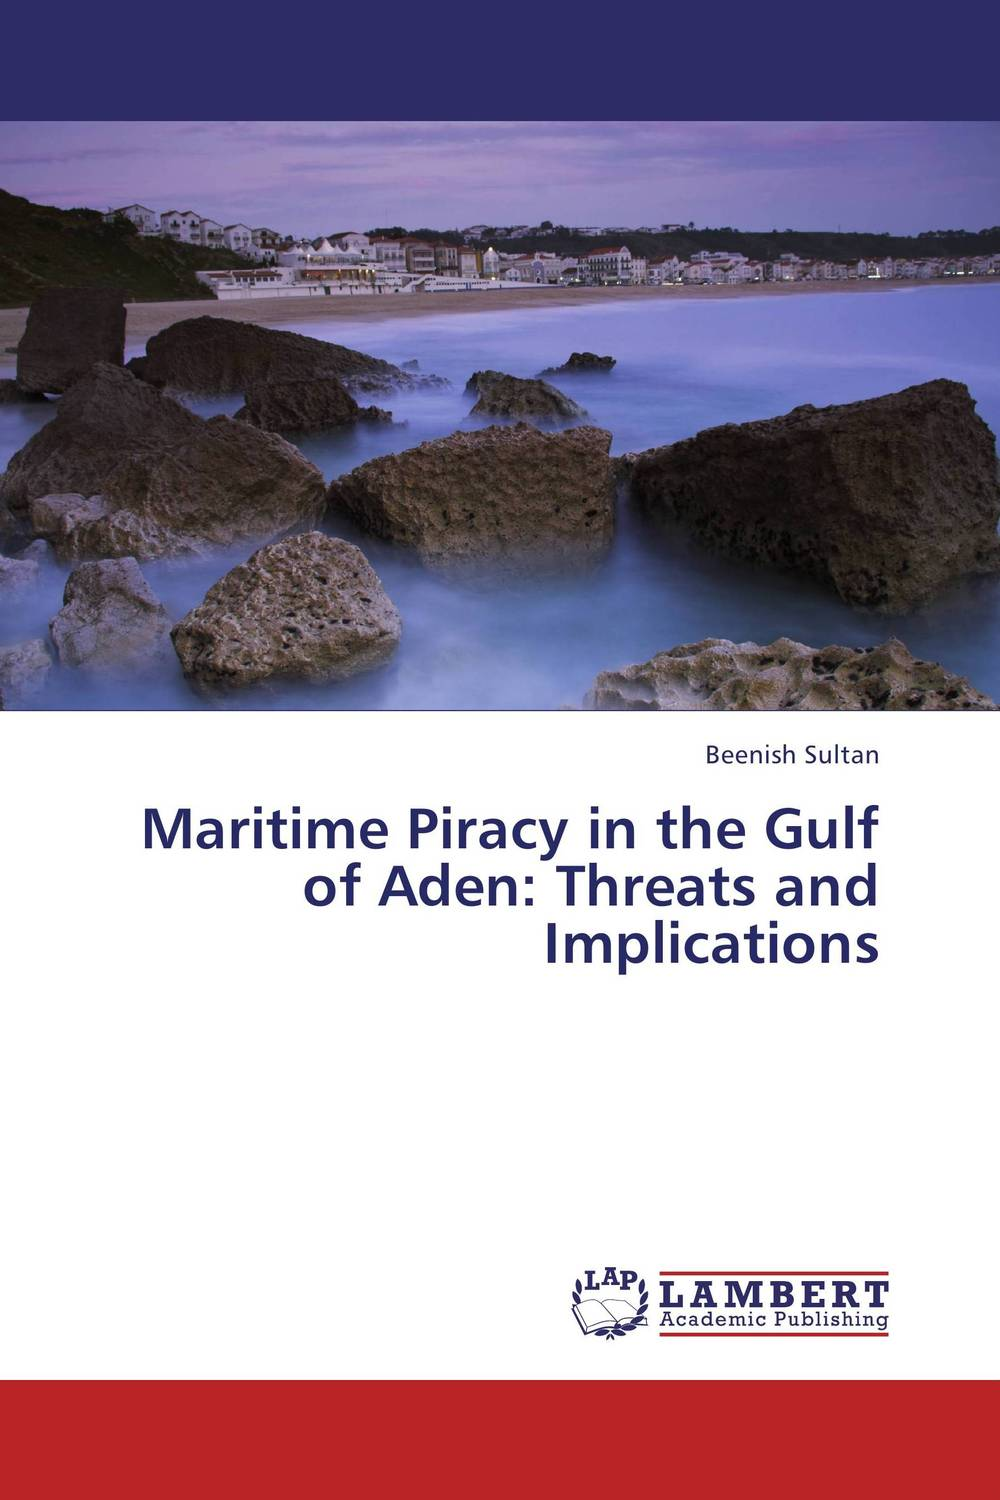 Maritime Piracy in the Gulf of Aden: Threats and Implications venice a maritime republic